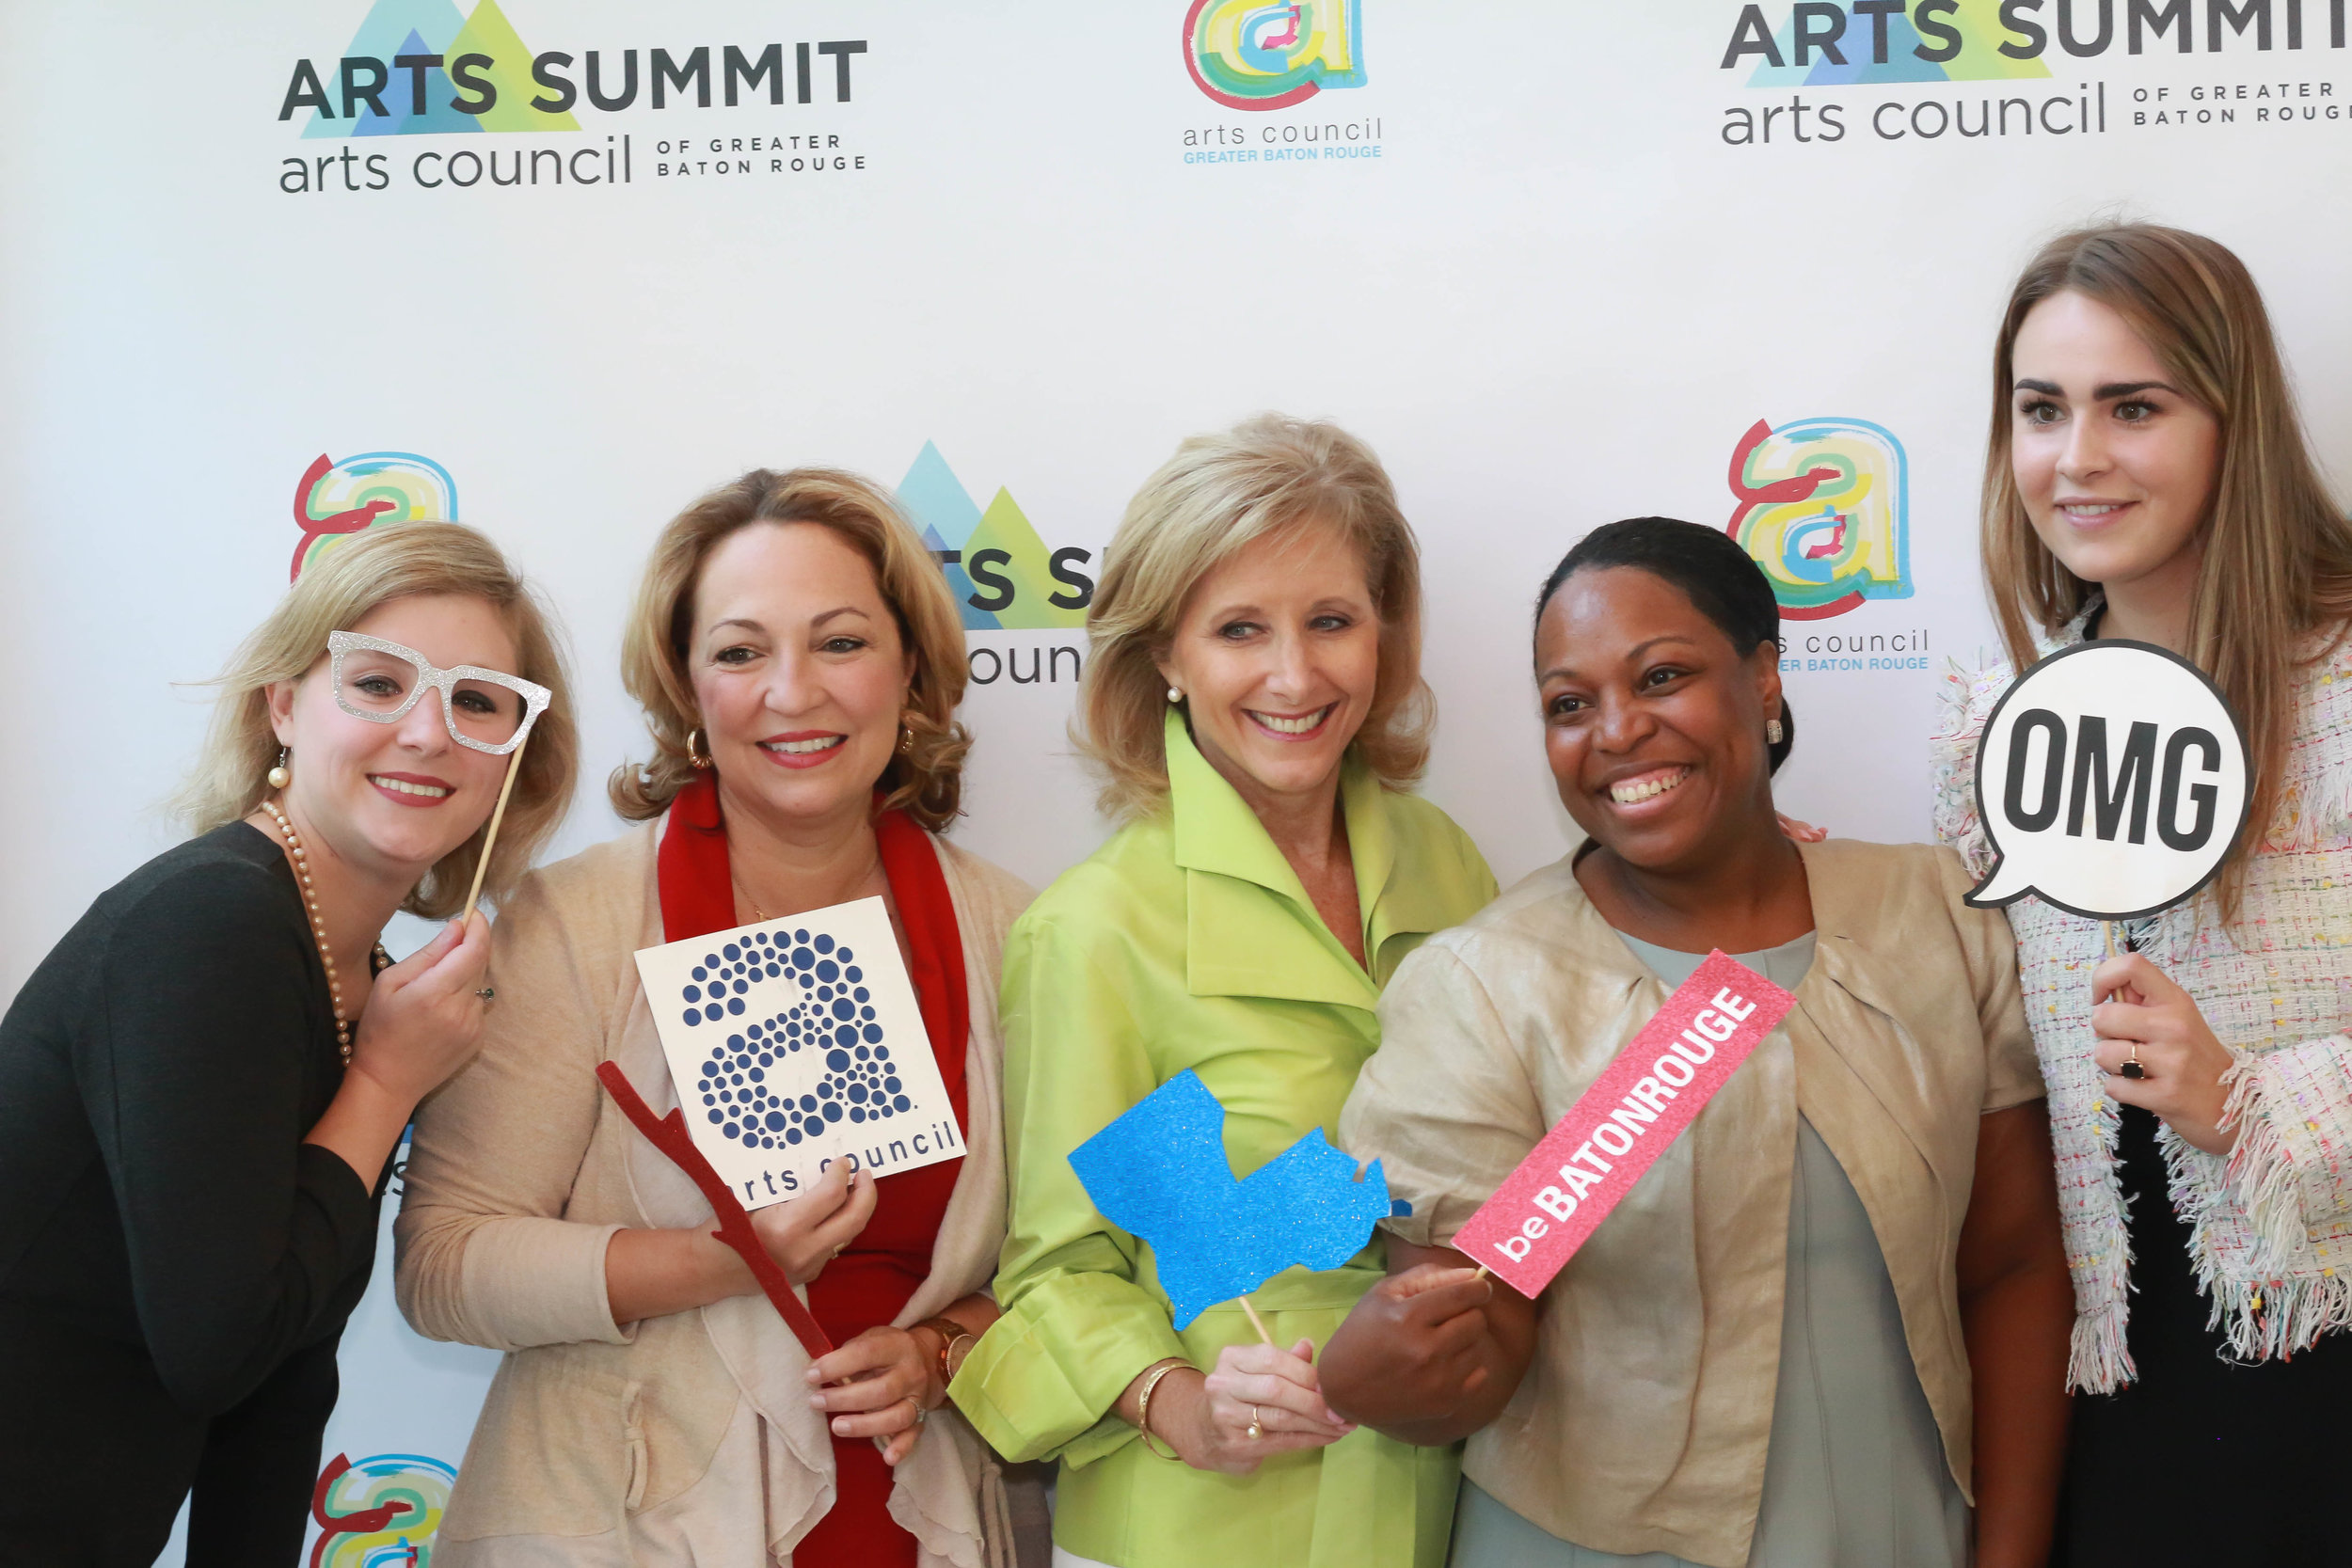 Thank you to beBATONROUGE for the use of their photo booth to capture memories of the 2018 Arts Summit.